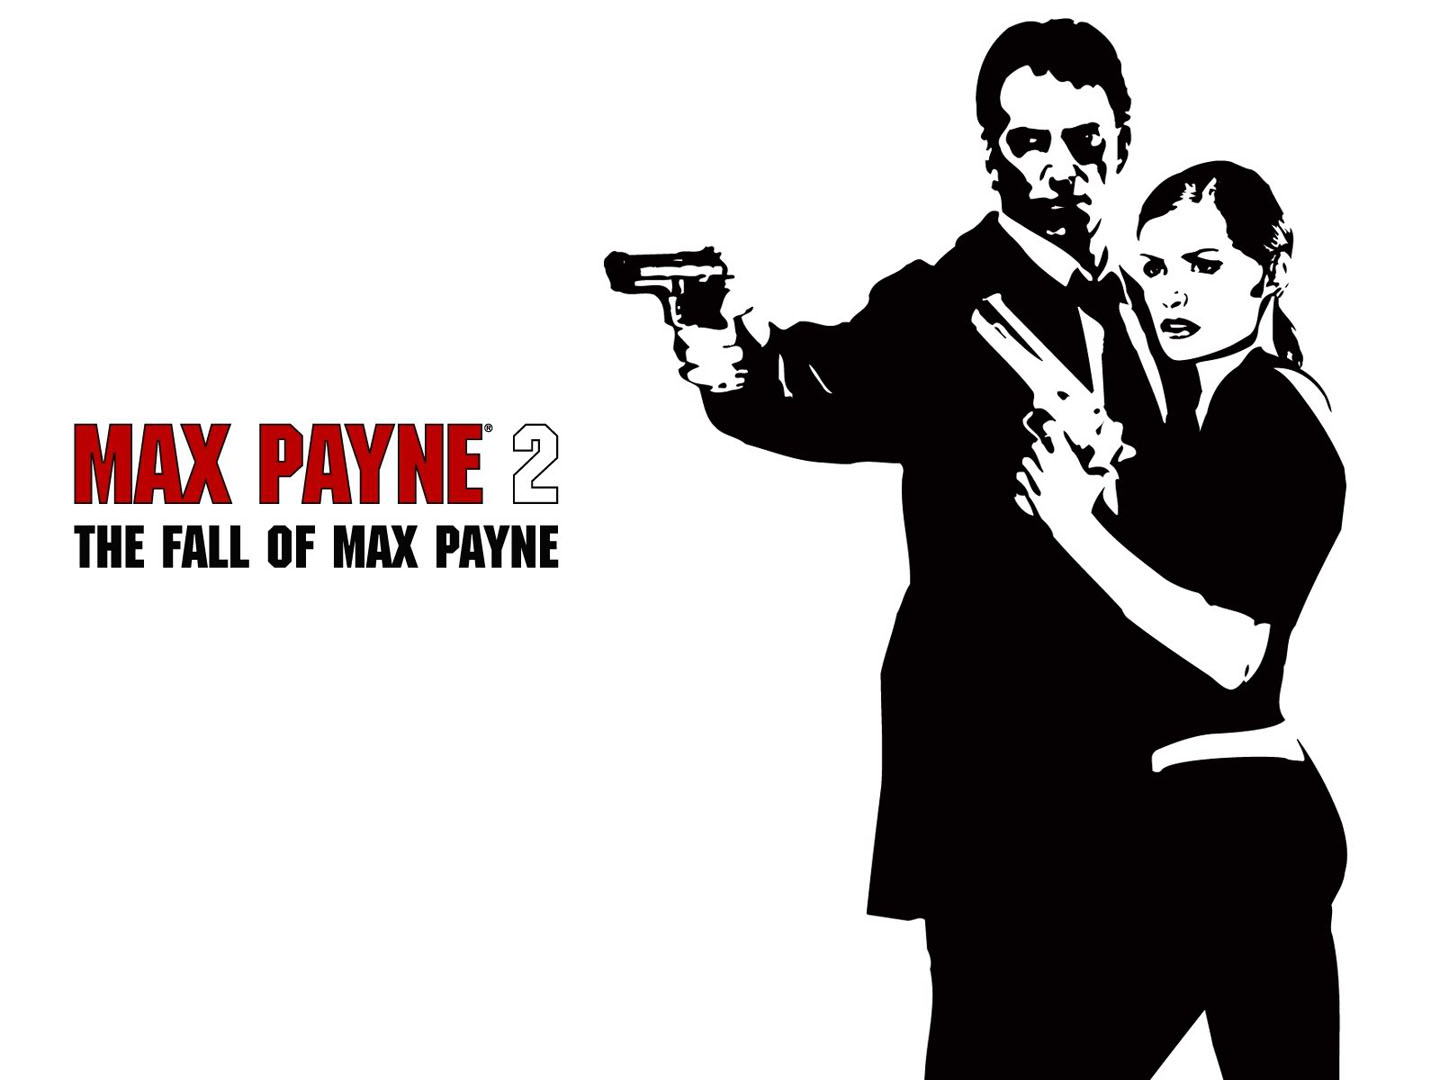 Fall Max Payne Hd Wallpapers Silhouette On White Background Max Payne 2 Wallpaper